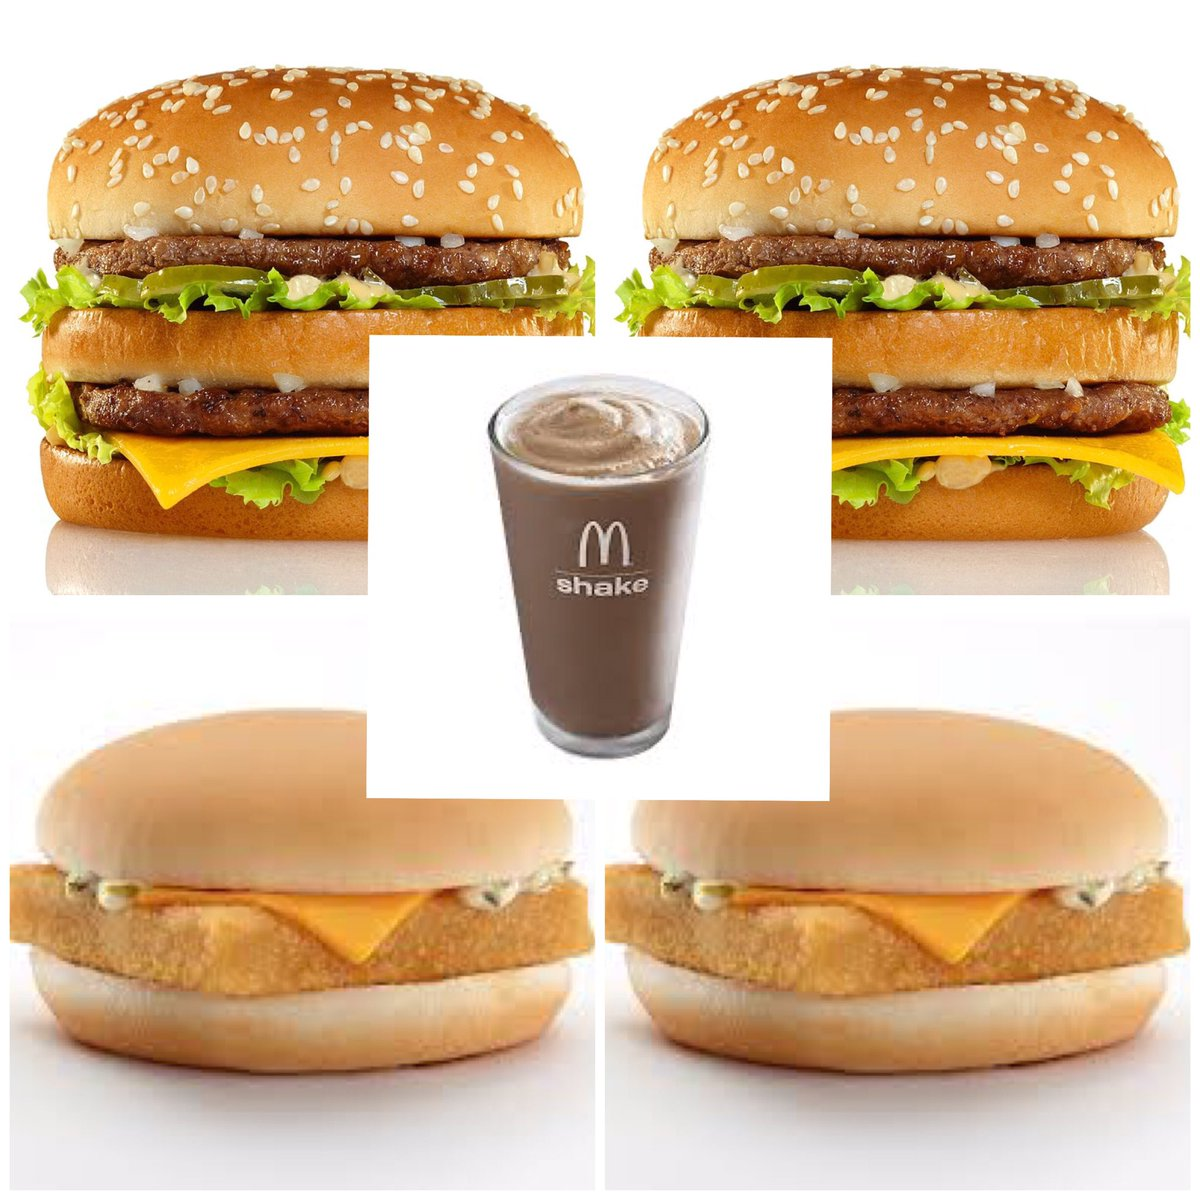 Richard Southern On Twitter A New Book Has Revealed Donald Trumps Favourite Mcdonald S Order Two Big Macs Two Filet O Fish One Large Chocolate Shake 2 430 Calories Https T Co Oymrqz17hl